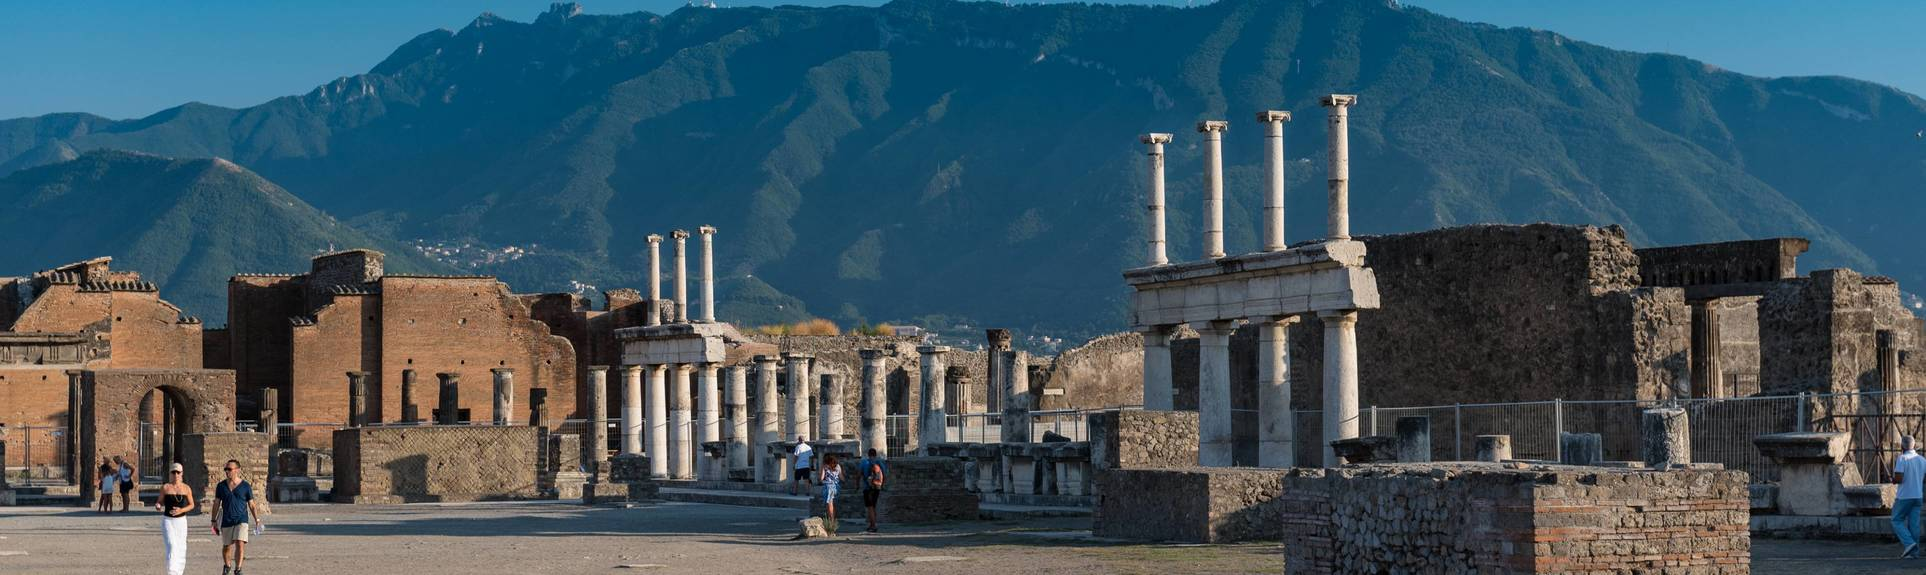 Long view of the Forum at Pompeii, Italy